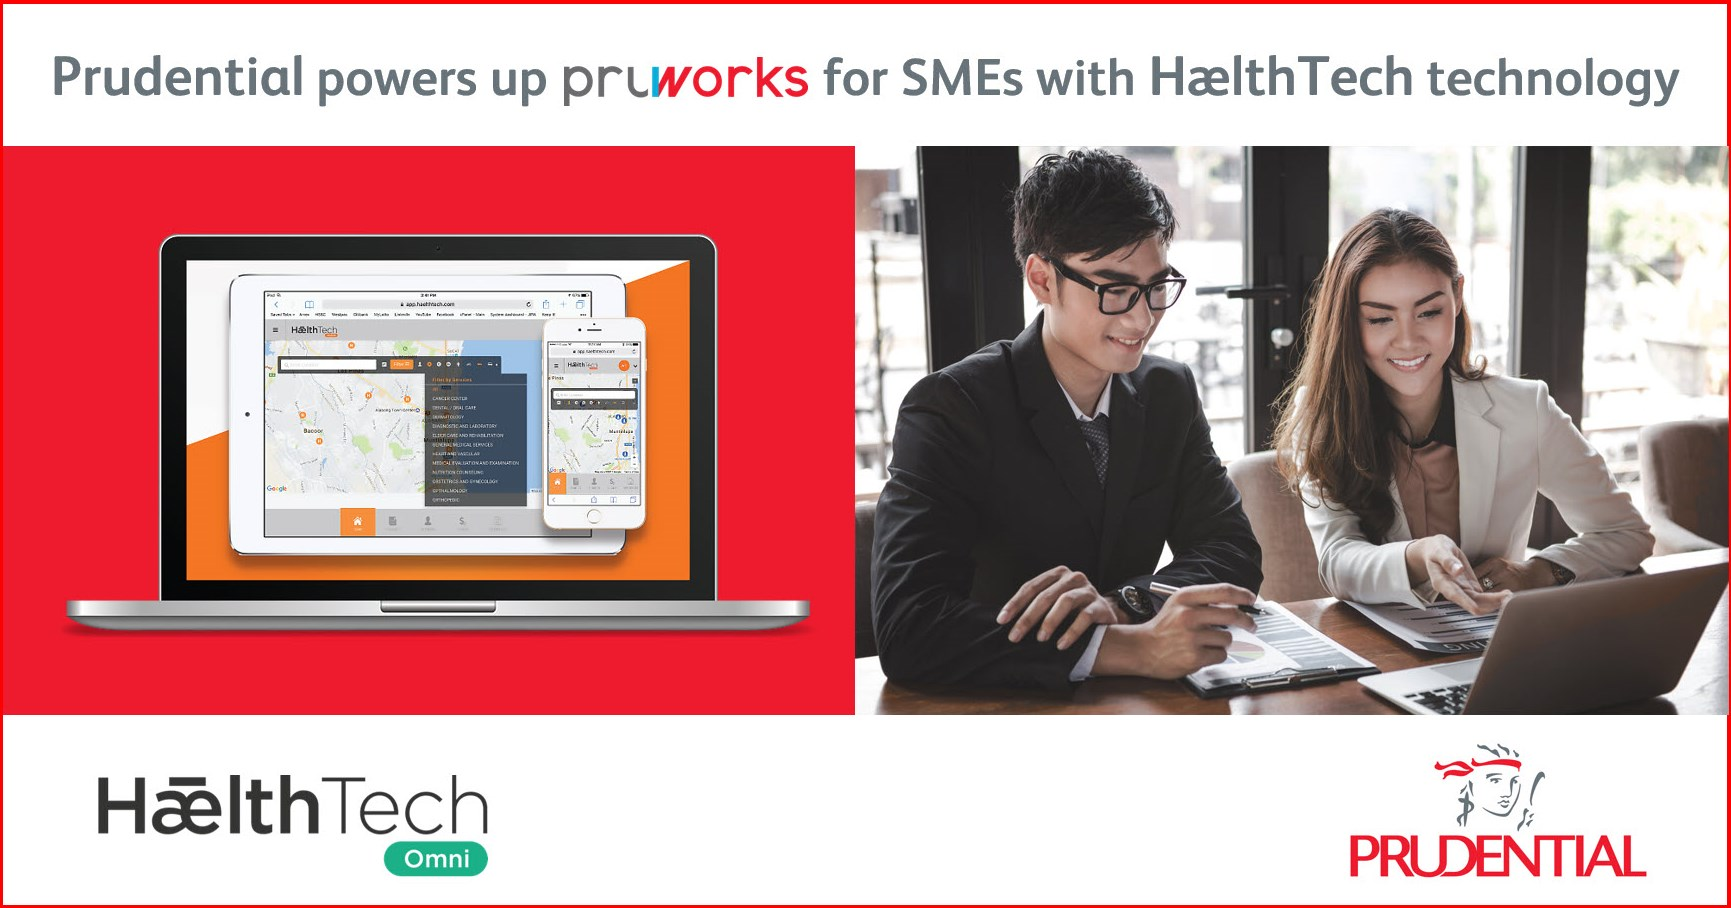 Kết quả hình ảnh cho Prudential powers up PRUWorks for SMEs with HælthTech technology